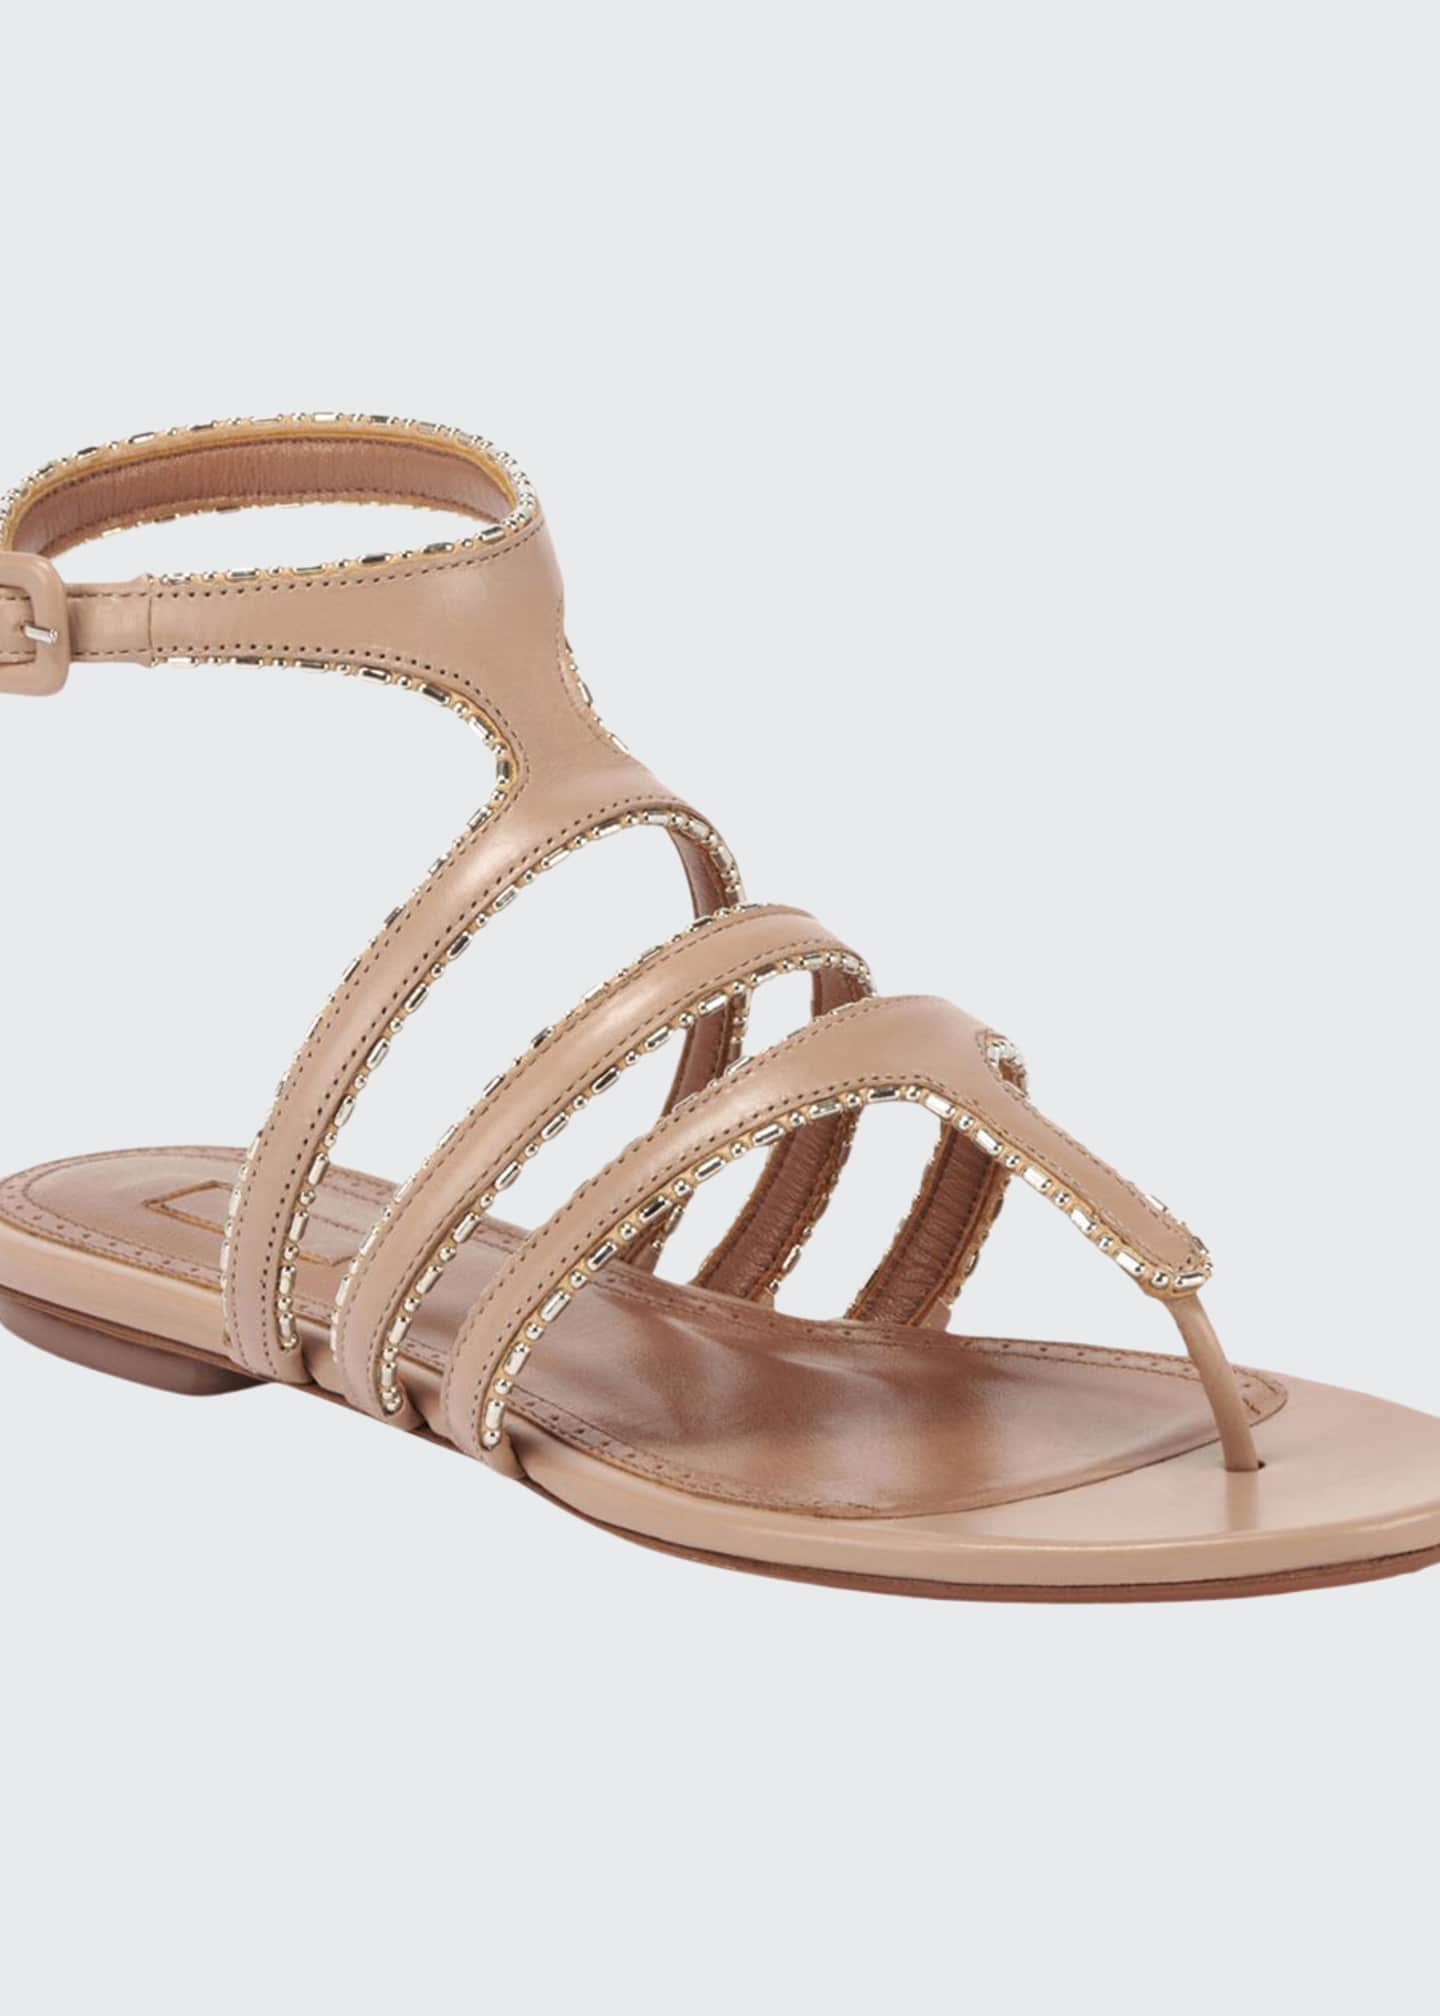 ALAIA Leather Beaded Caged Sandals